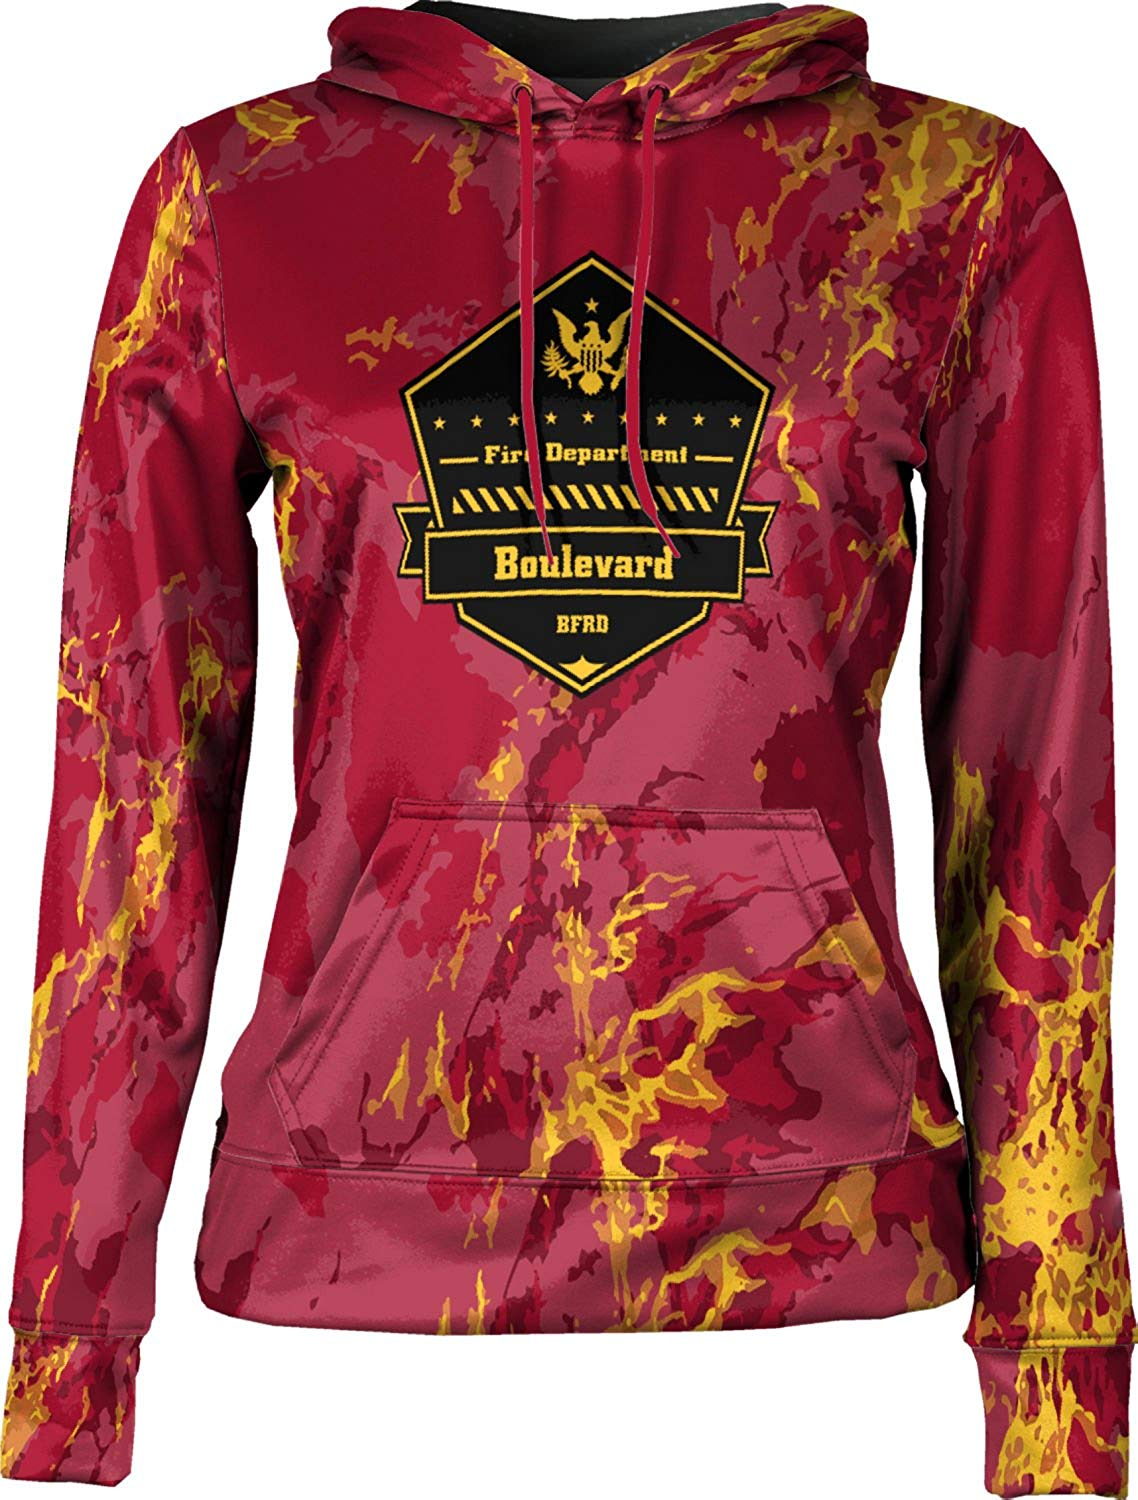 ProSphere Girls' Boulevard Fire and Rescue Department Fire Department Marble Hoodie Sweatshirt